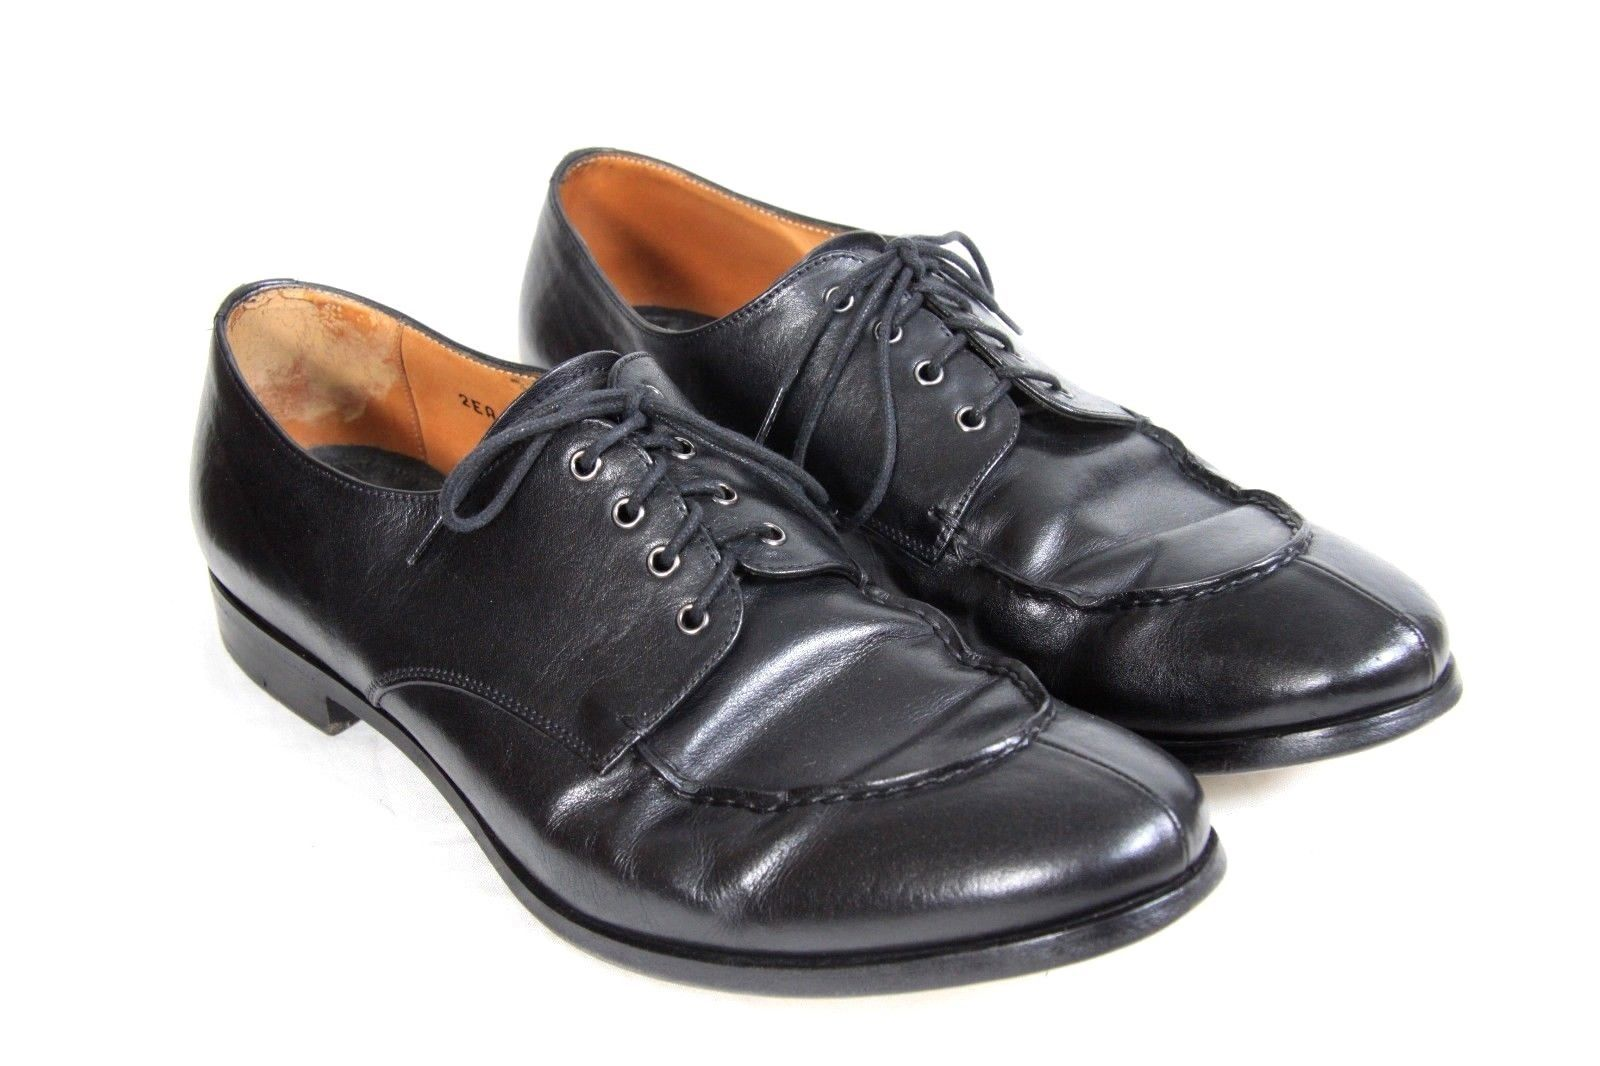 PRADA Black Leather Split Moccasin Toe Lace Up Oxford Dress Casual Shoes Mens 8